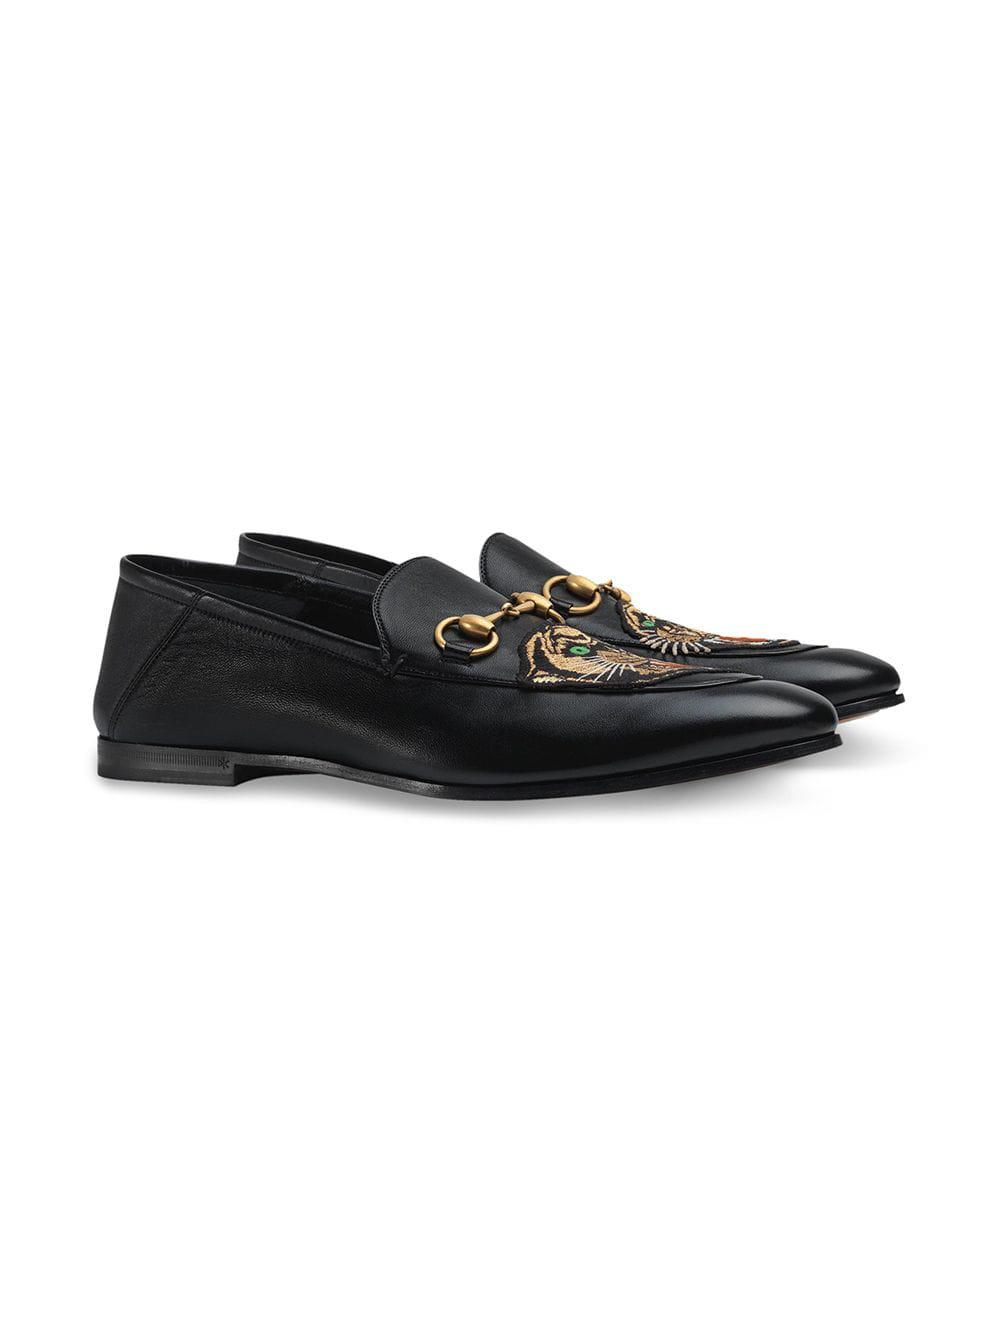 7474cda4d88 Gucci Leather Loafer With Wolf in Black for Men - Save 5% - Lyst